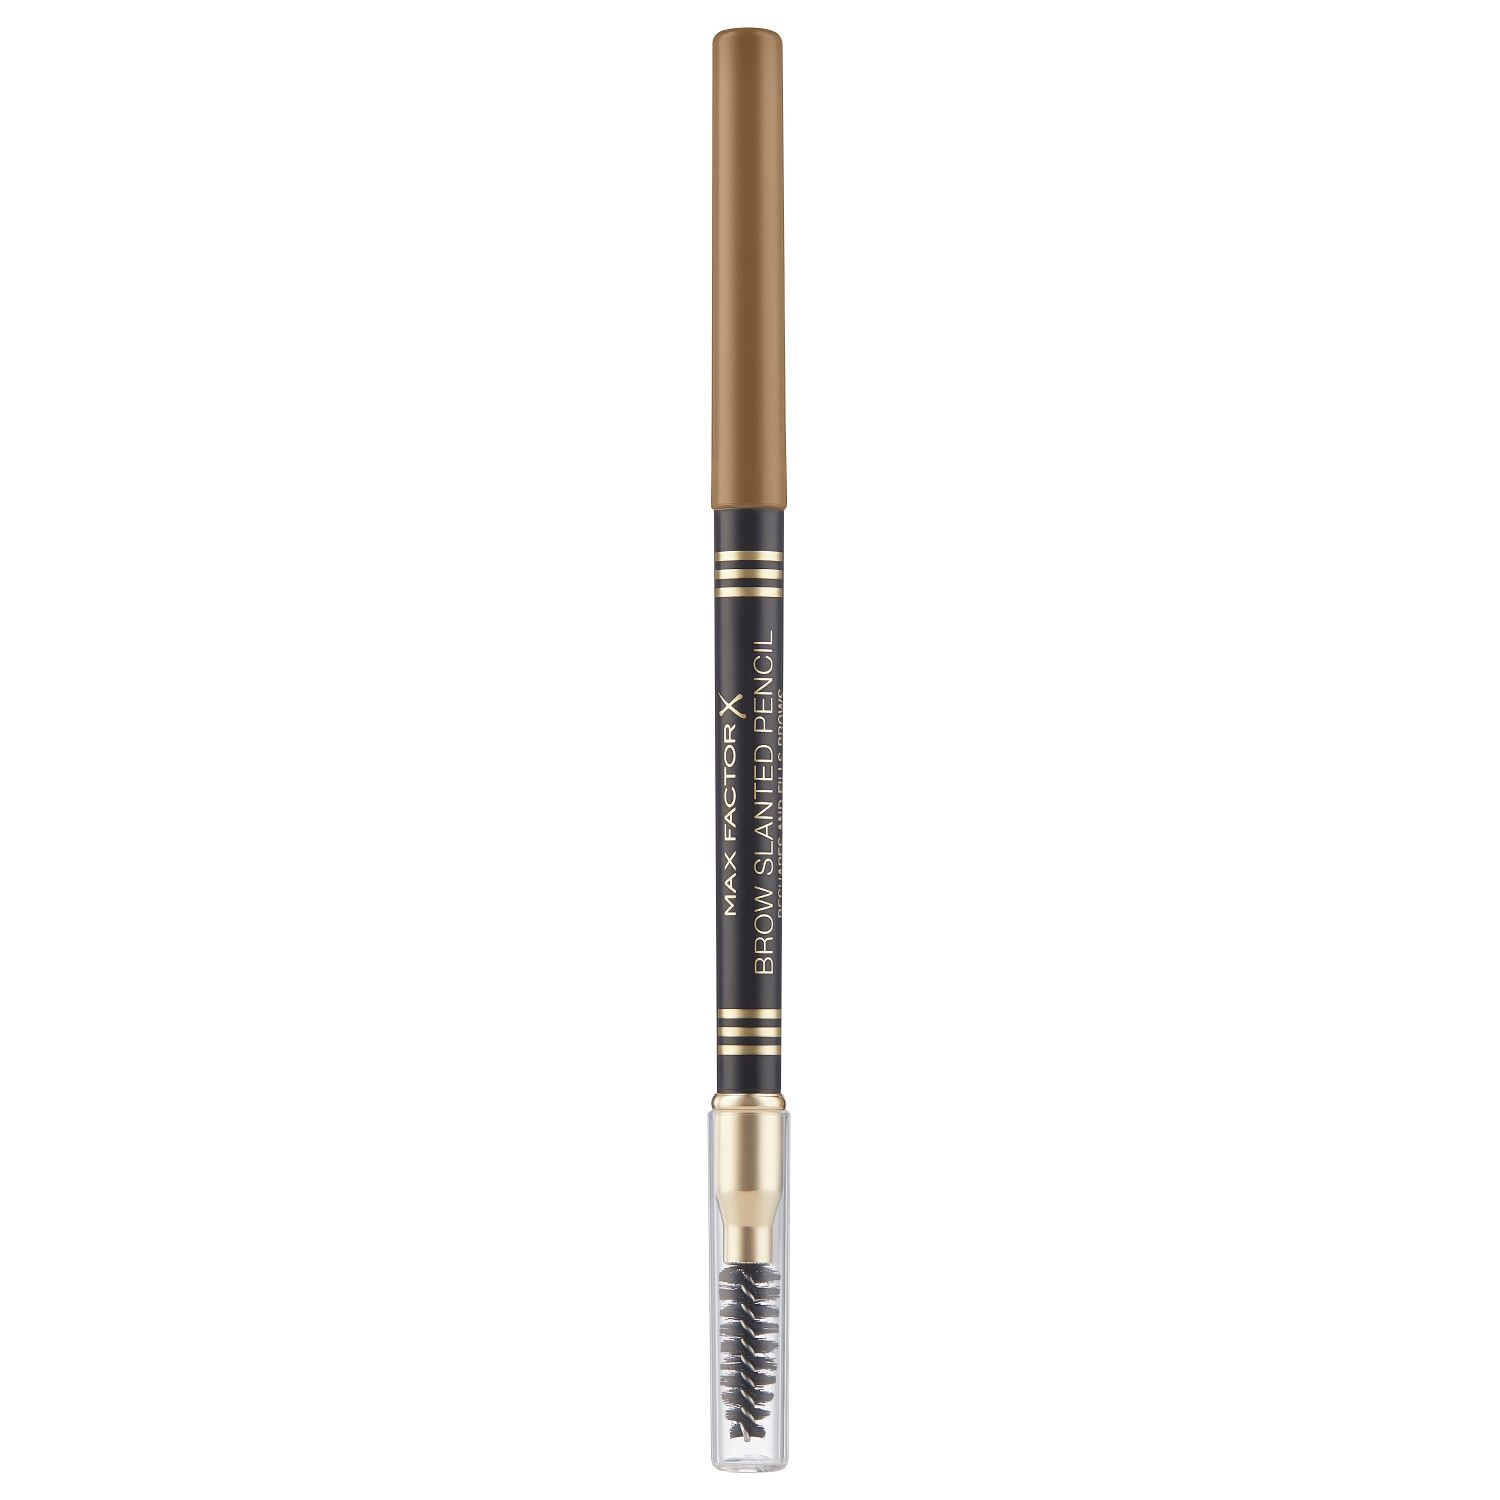 BROW SLANTED PENCIL 01 Blonde